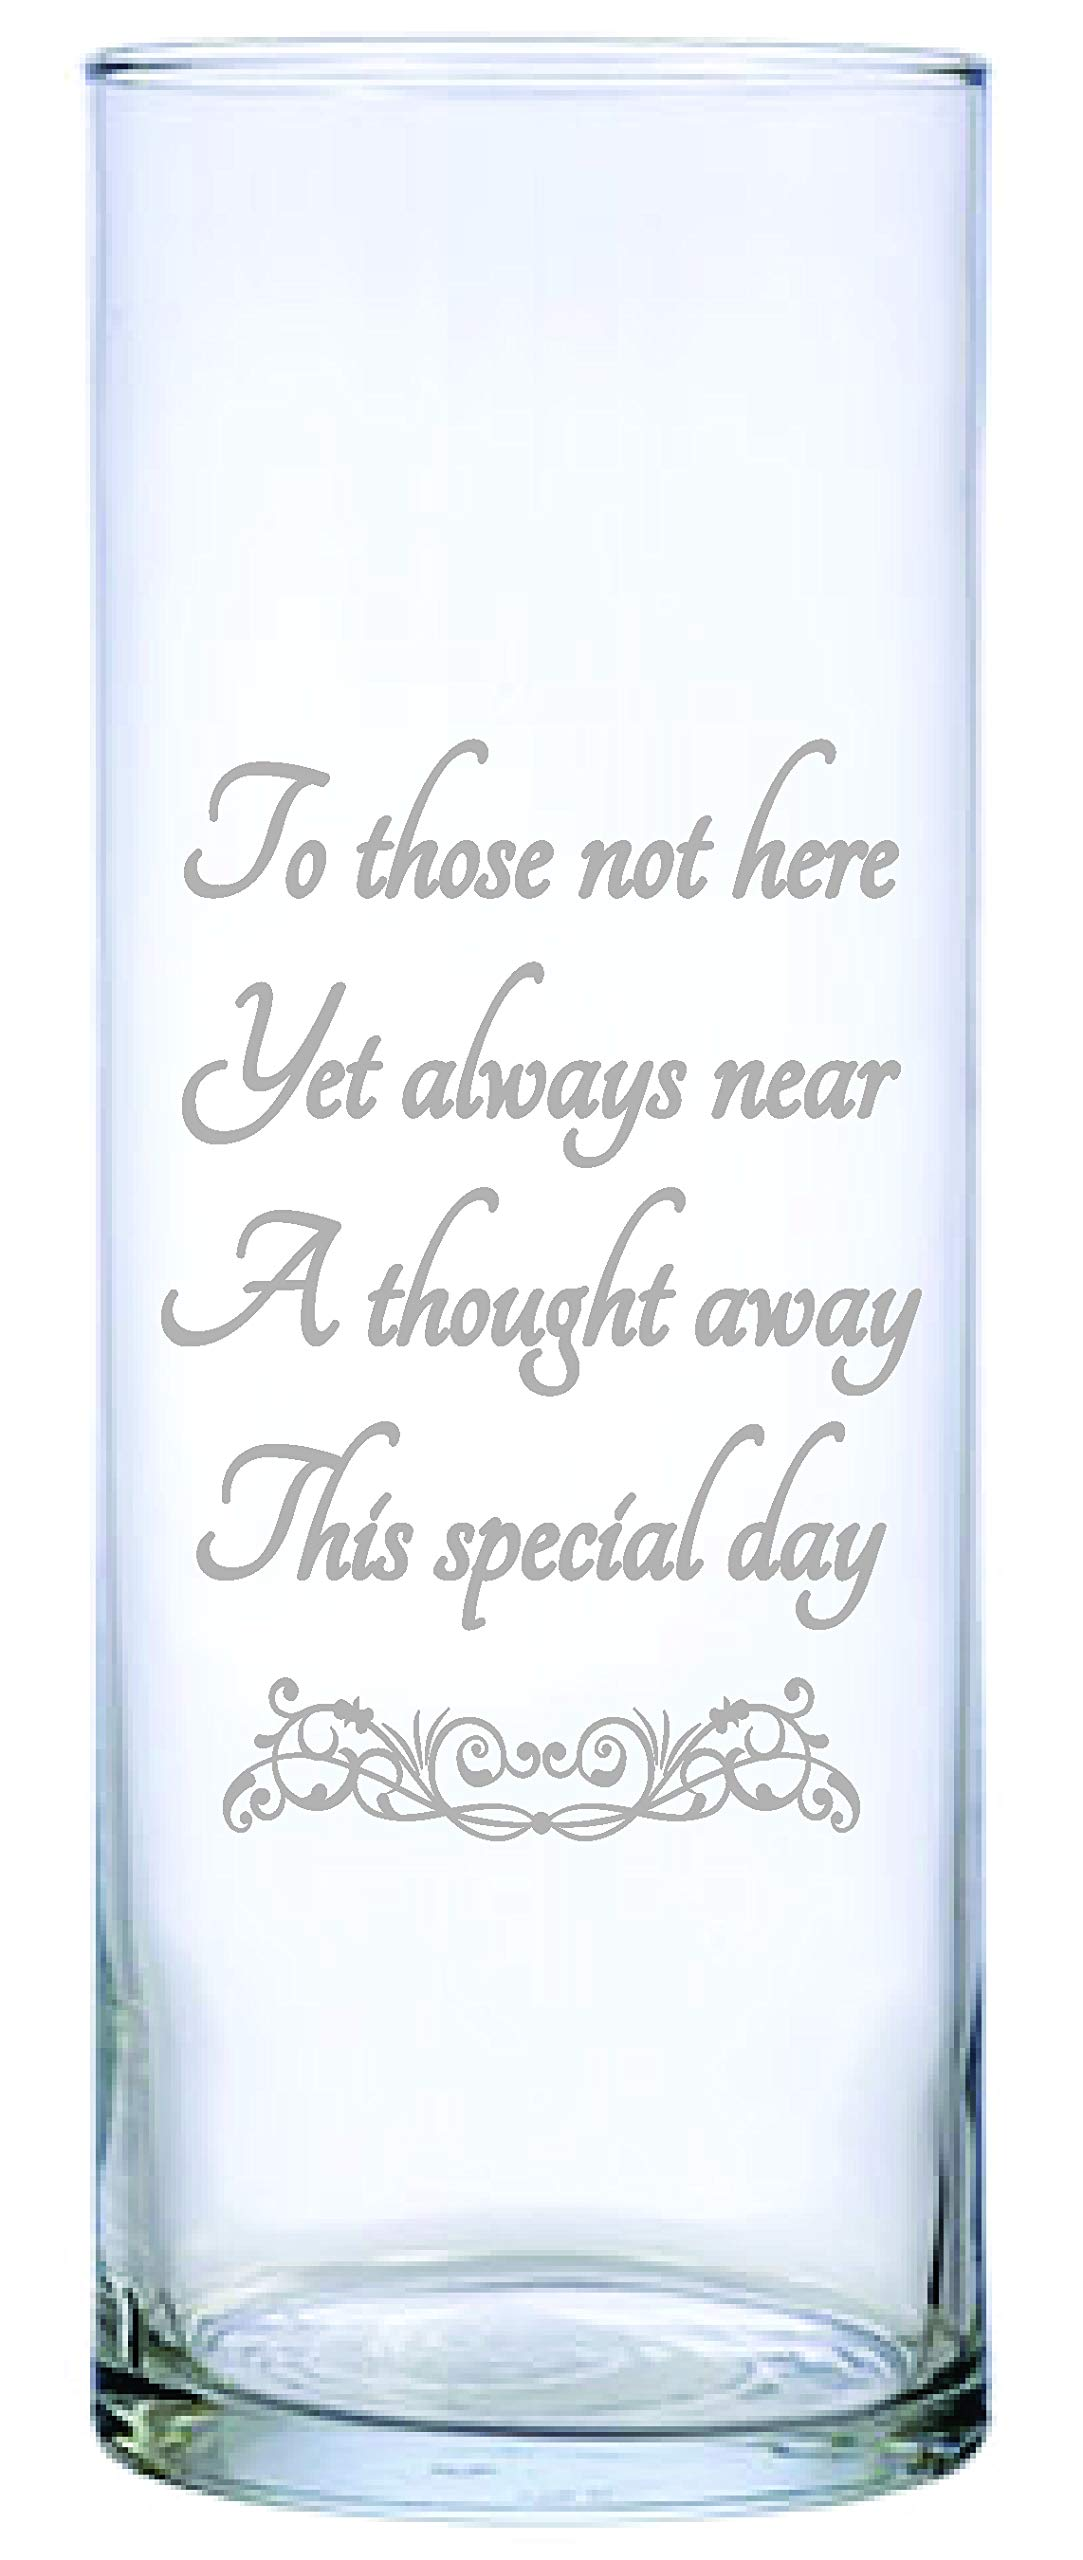 IE Laserware for Those not here, 9'' Memorial Candle Beautifully Etched. Comes Complete with 3'' White Floating Candle, just add Water and Light The Wick